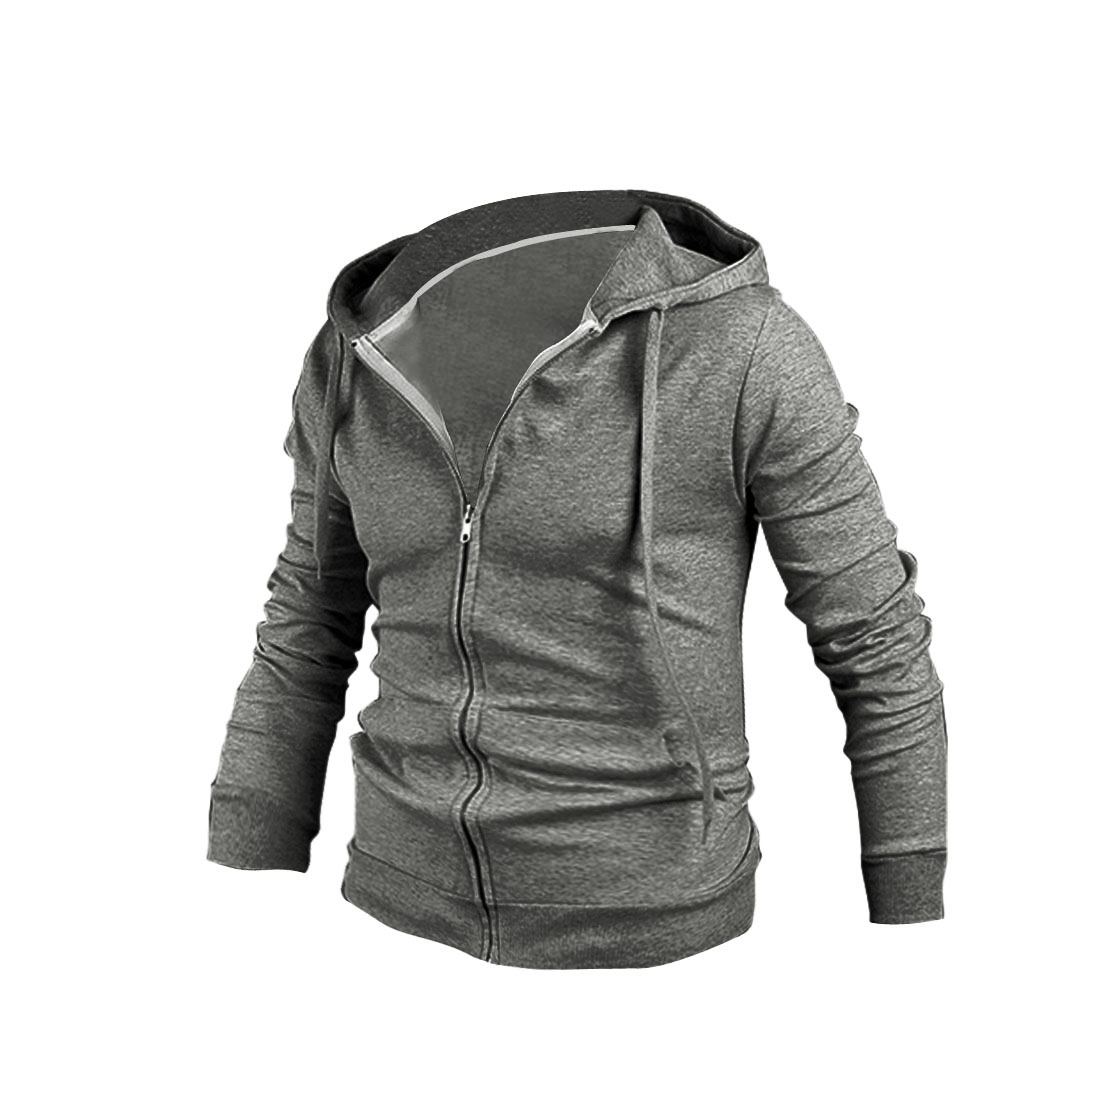 Stylish Men Zip Closure Long Sleeve Hoodies Gray M